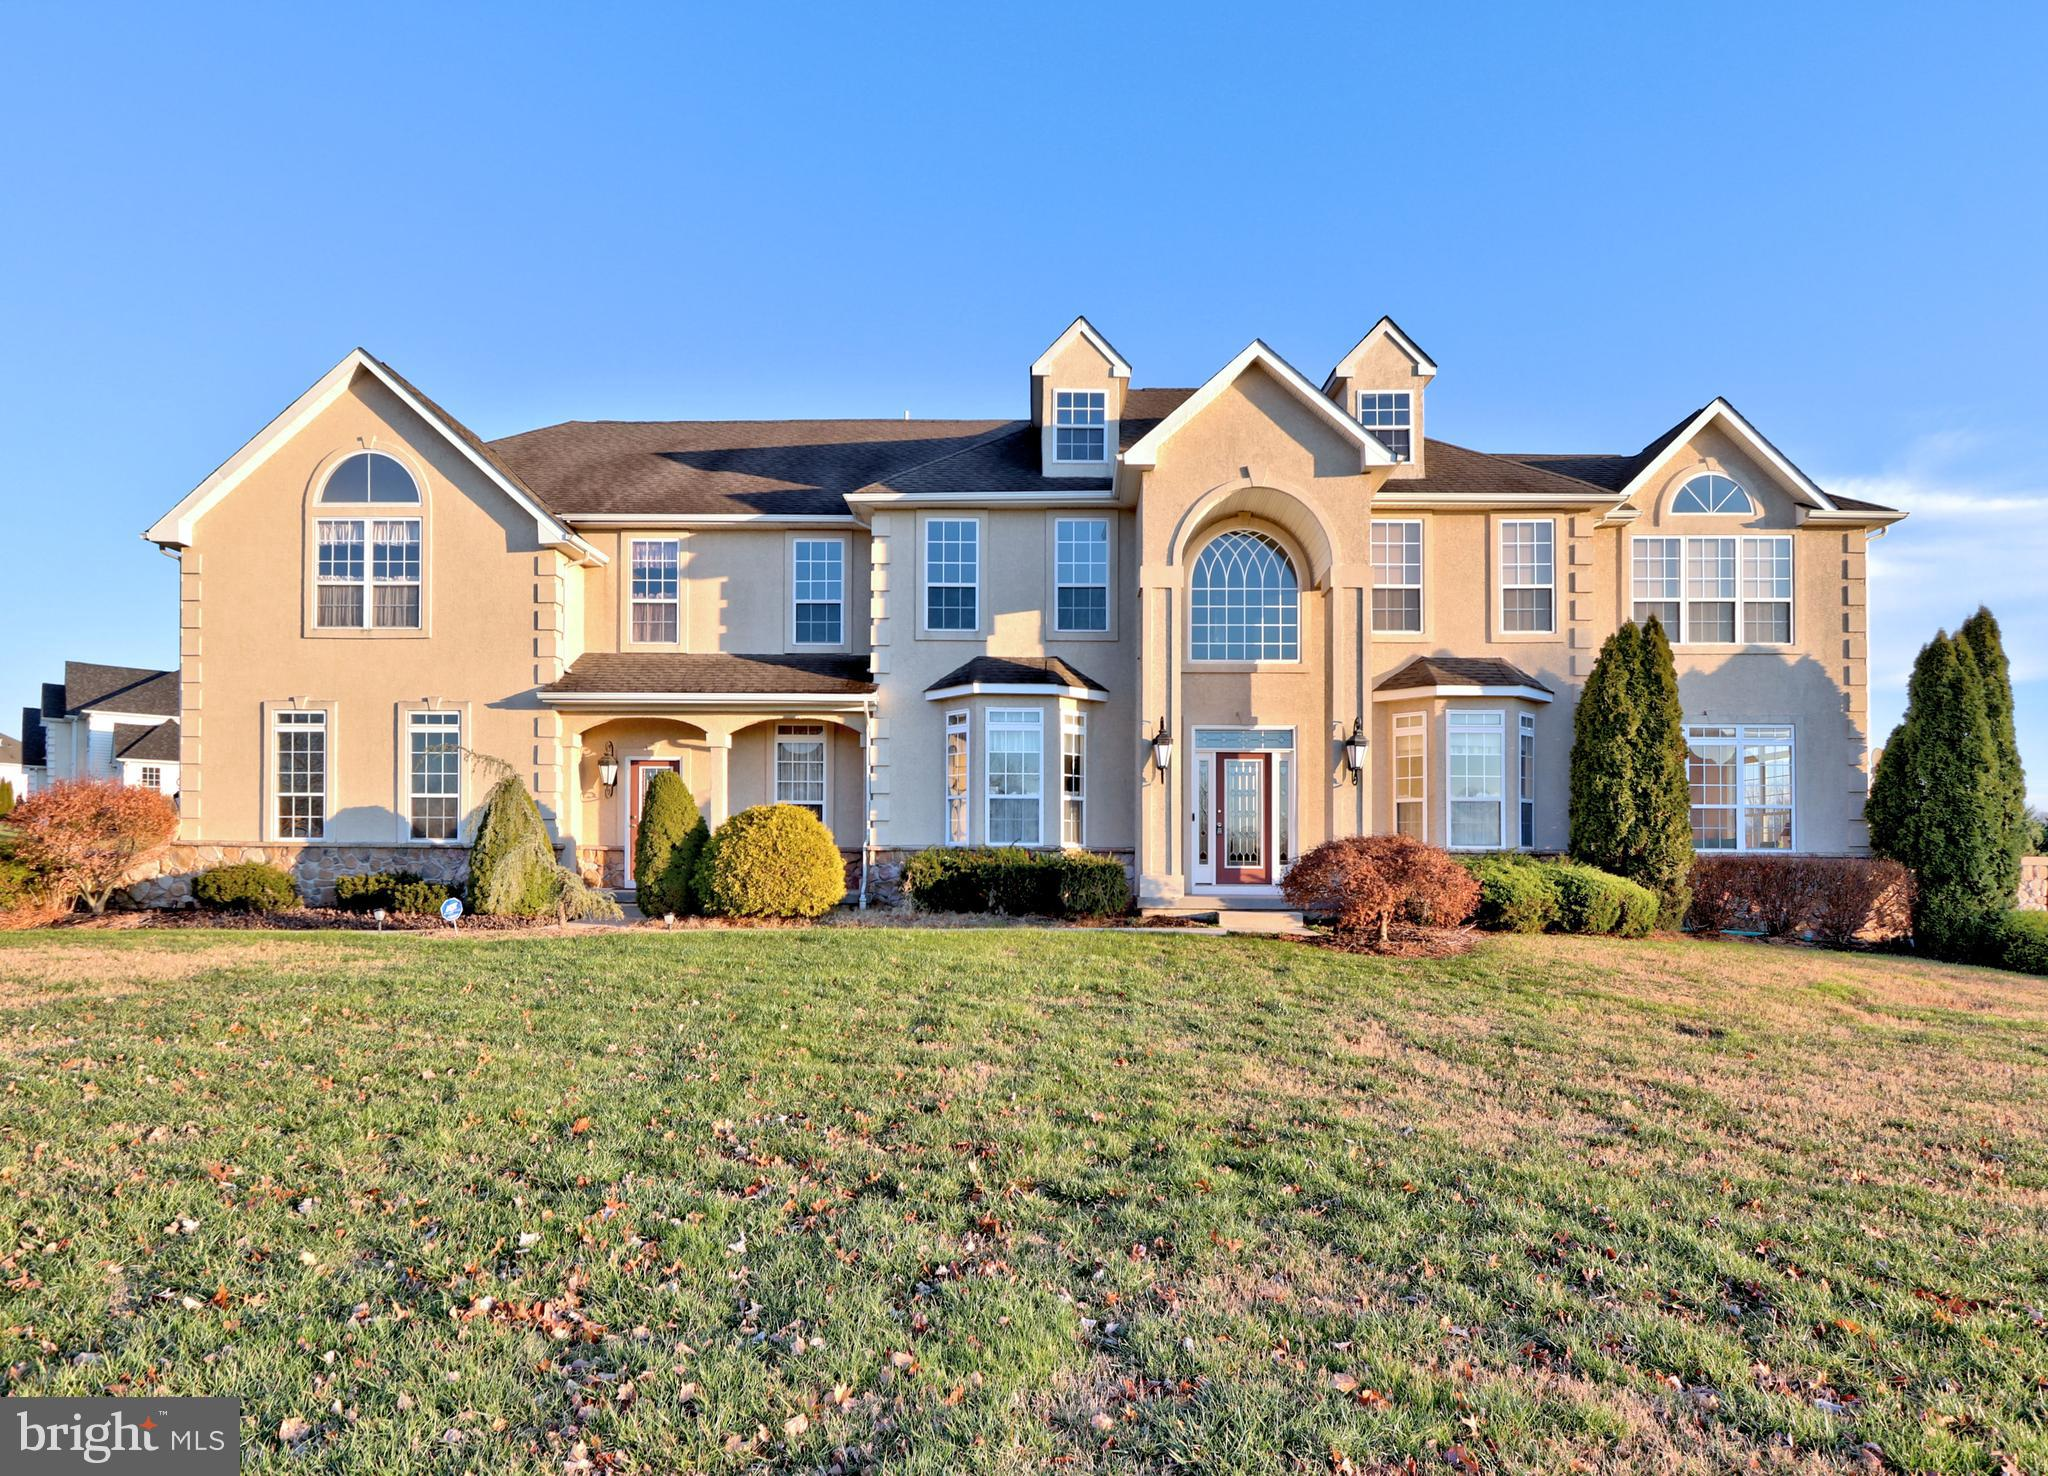 157 TARA RUN, WOOLWICH TWP, NJ 08085